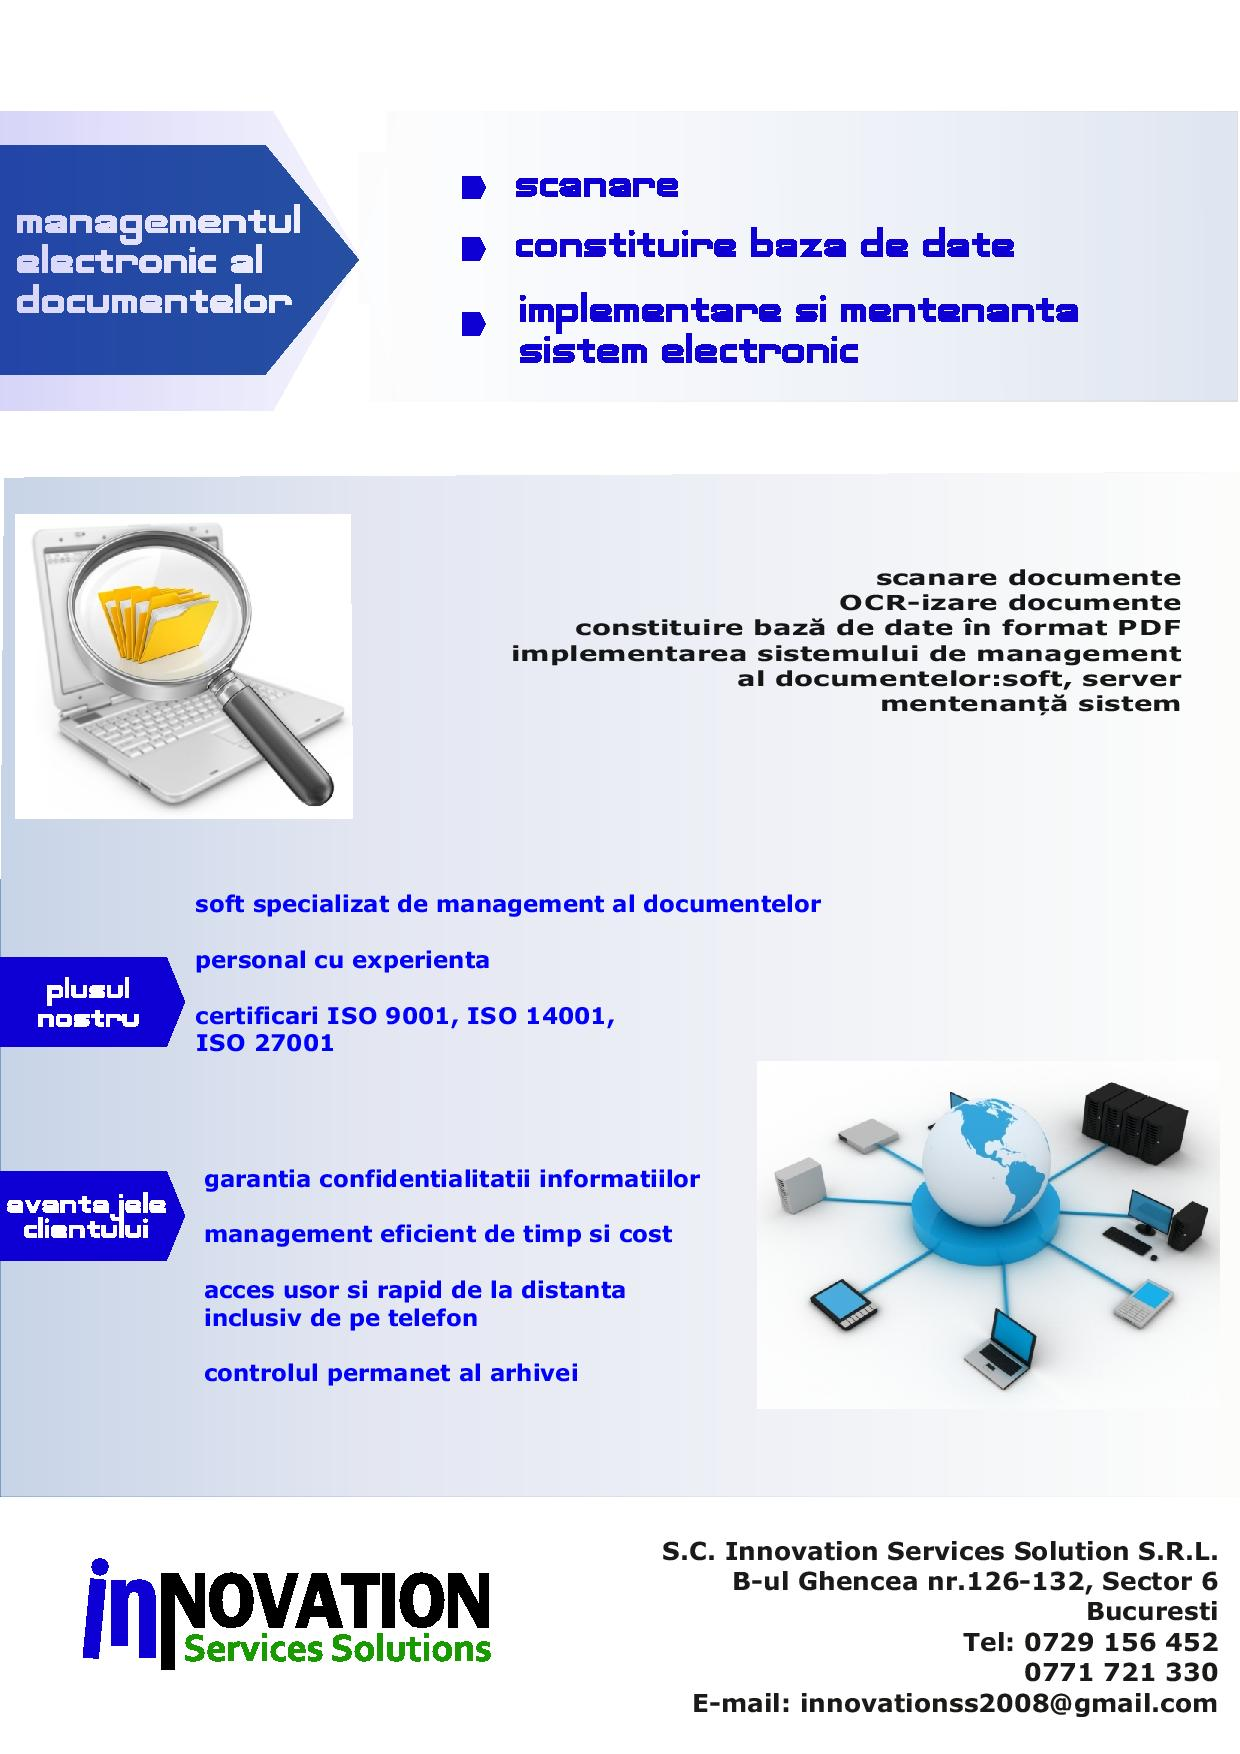 S.C. Innovation Services Solution S.R.L. - Arhivare Documente Arges